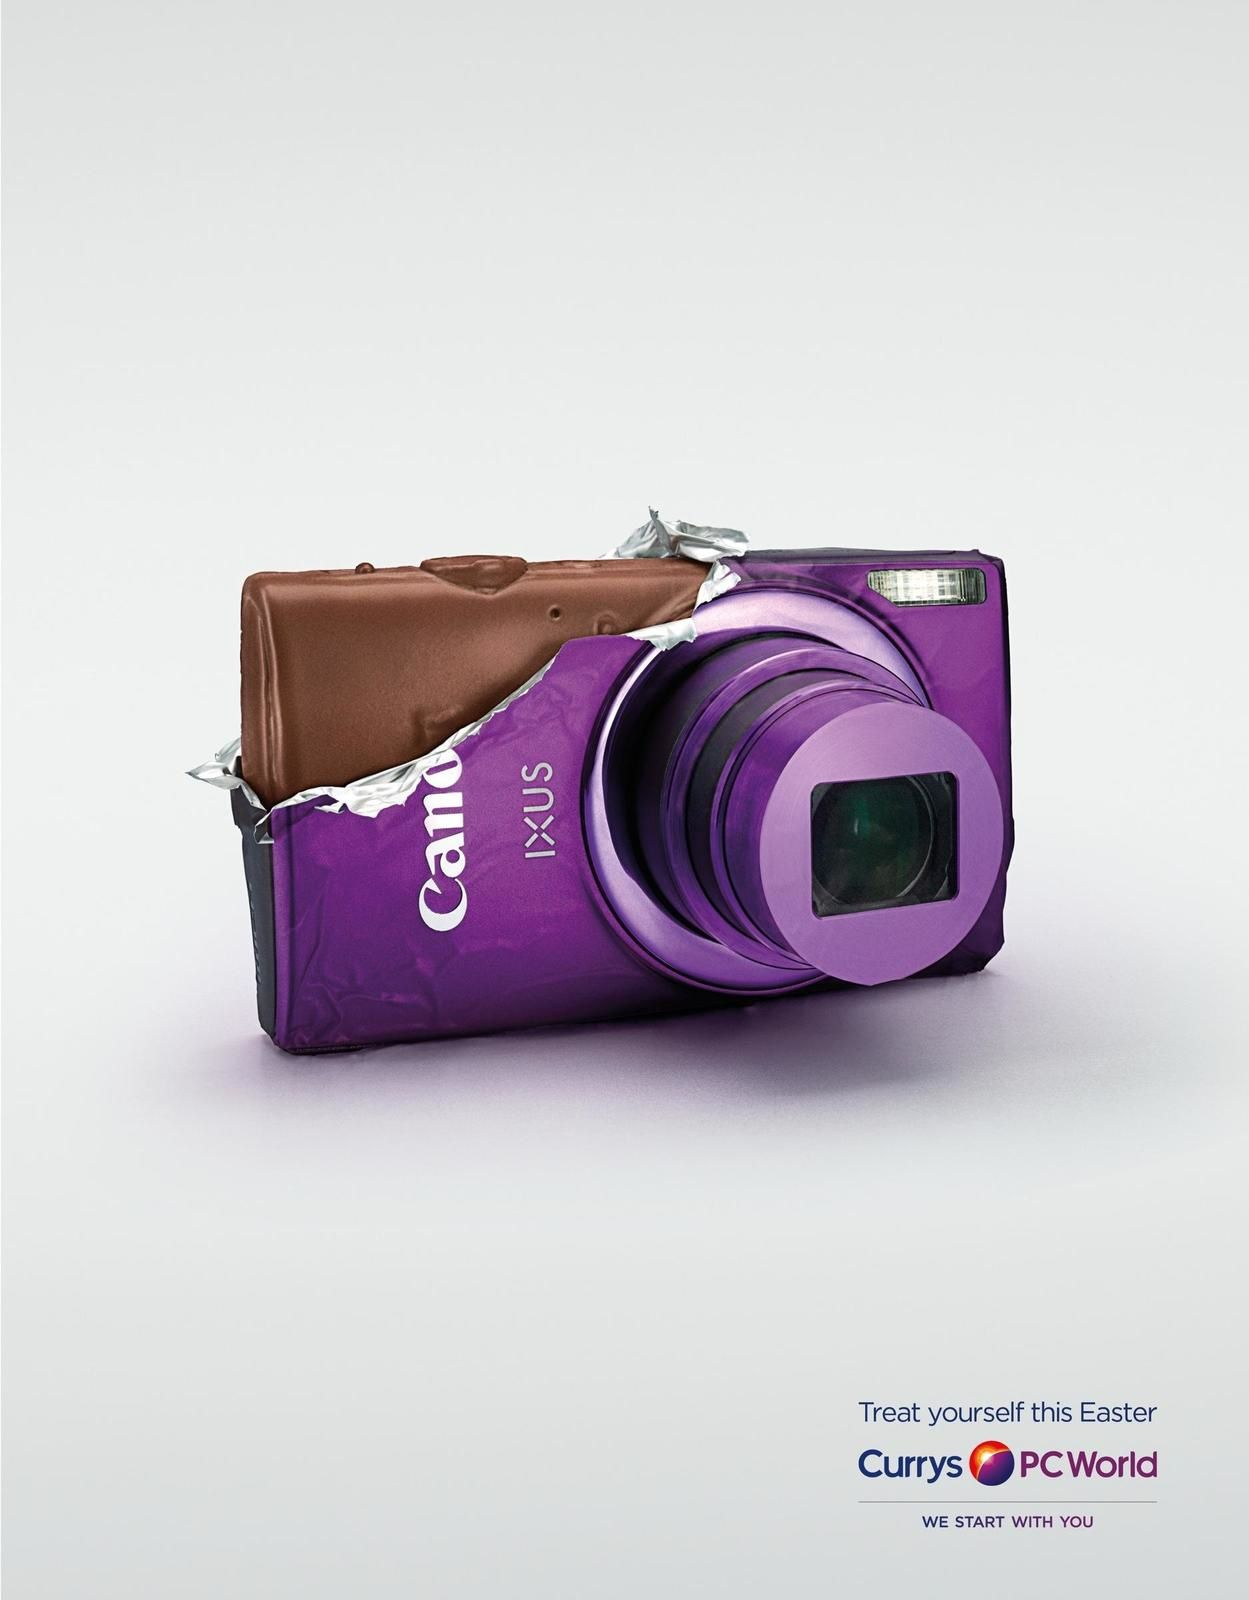 "Currys : ""Treat yourself this Easter"" I Agence : AMV BBDO, Londres, Royaume-Uni (avril 2015)"